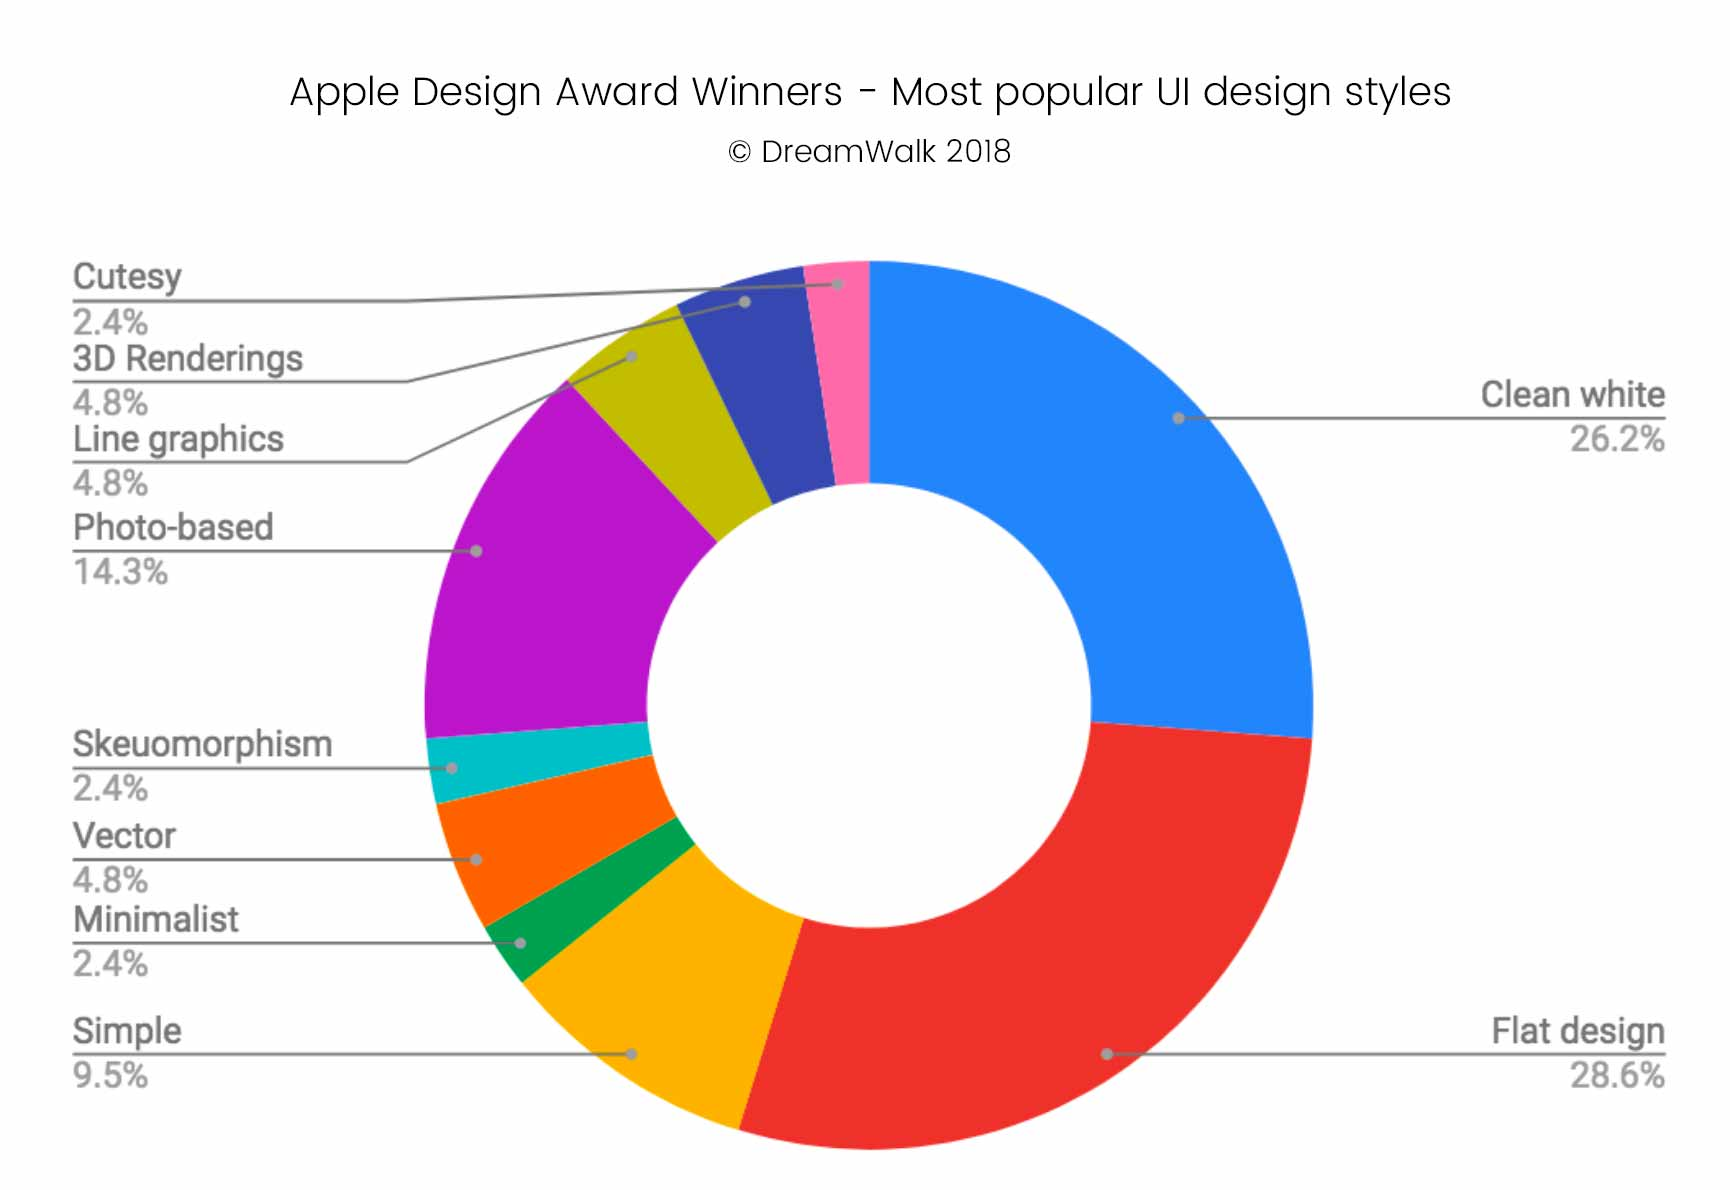 Apple Design Awards Most popular UI design styles